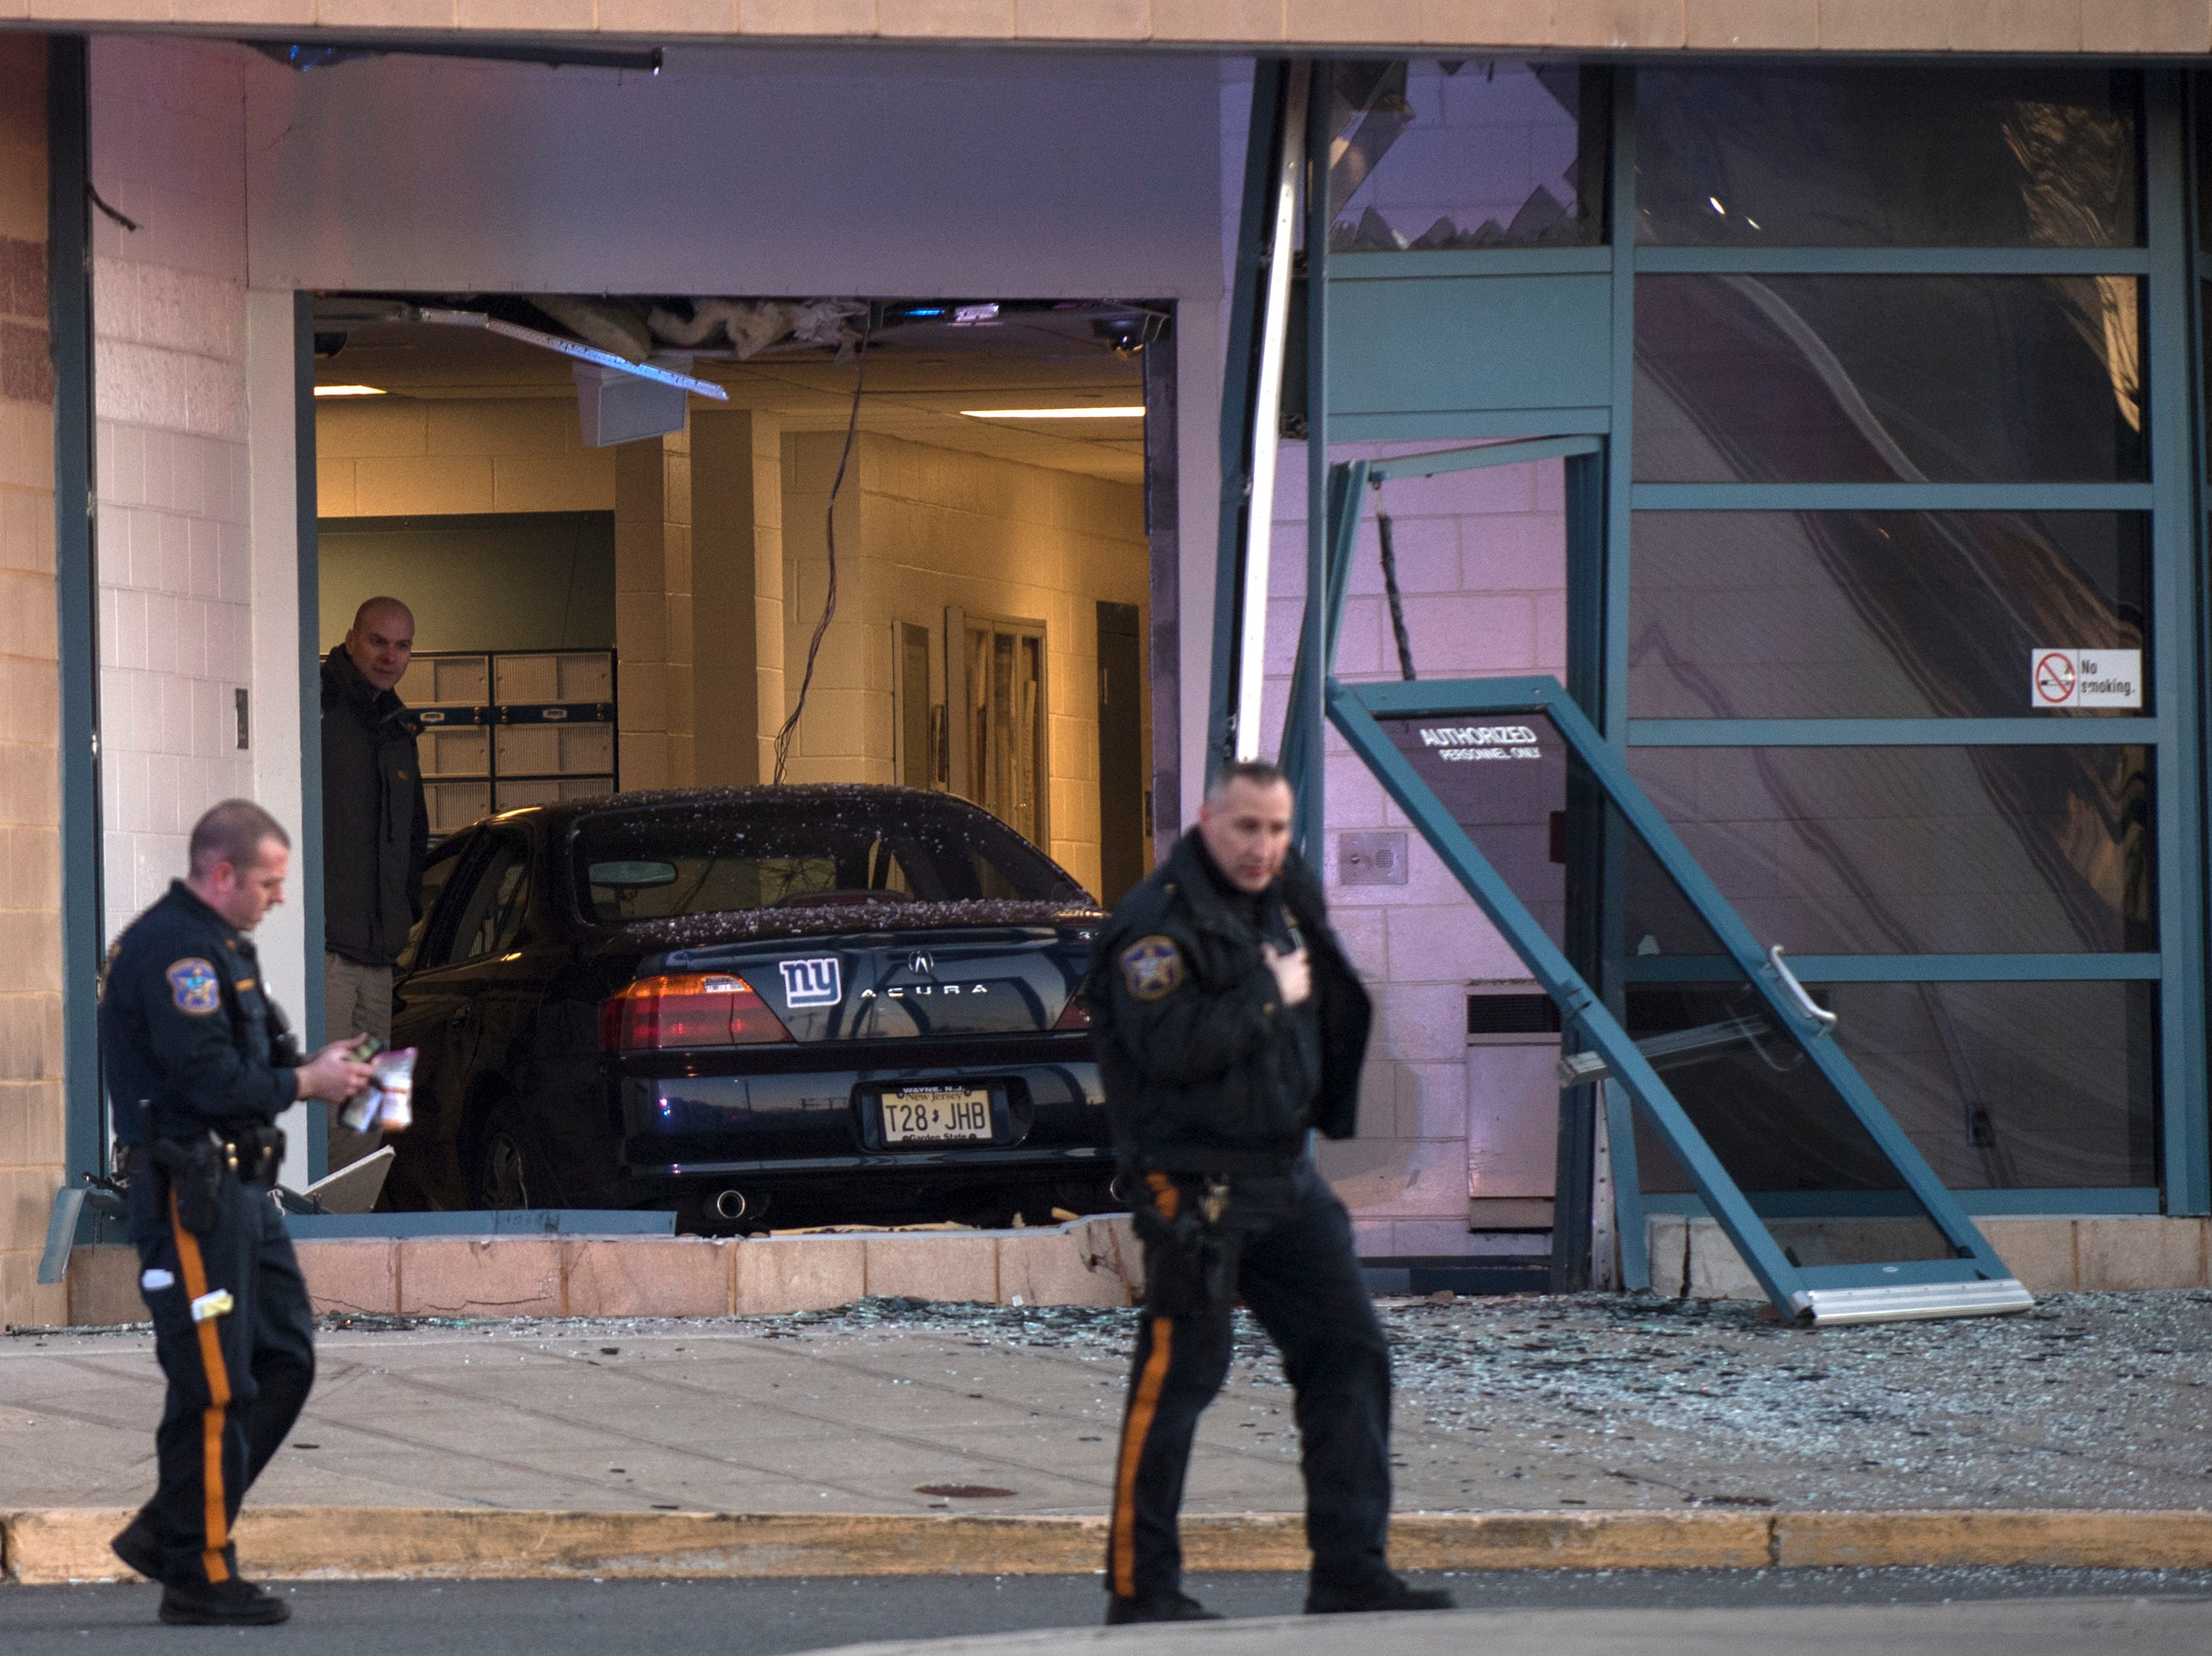 A vehicle crashed into the Bergen County Jail on Friday, January 11, 2019.